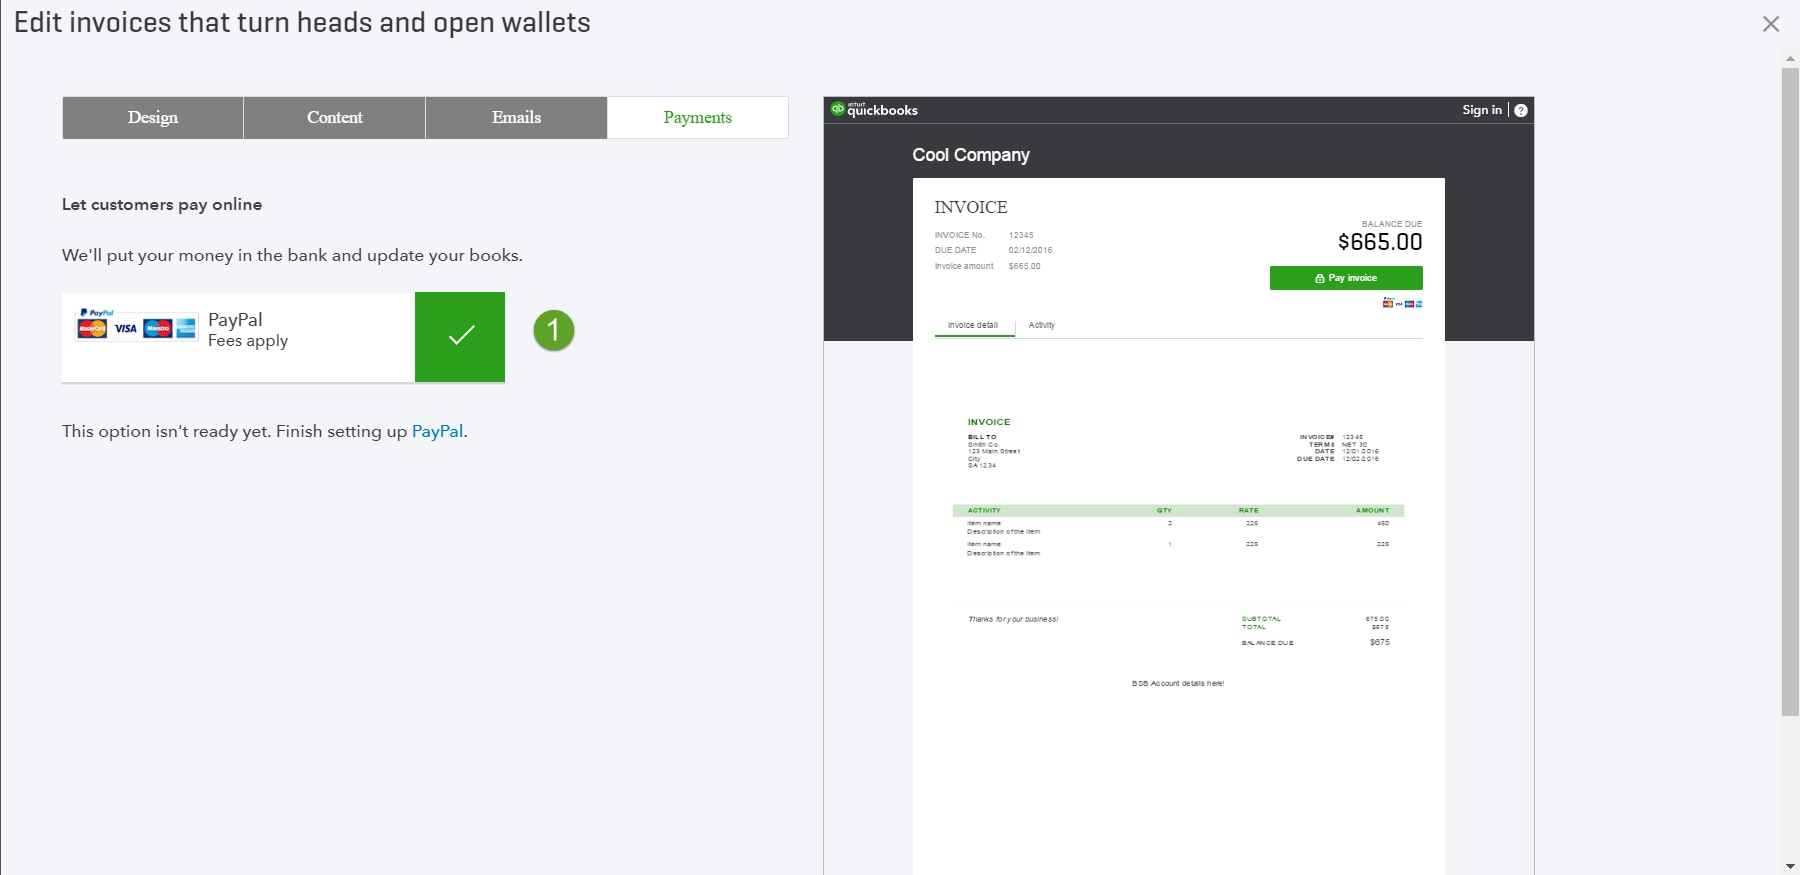 Send beautiful, custom invoices quickly with a simplified